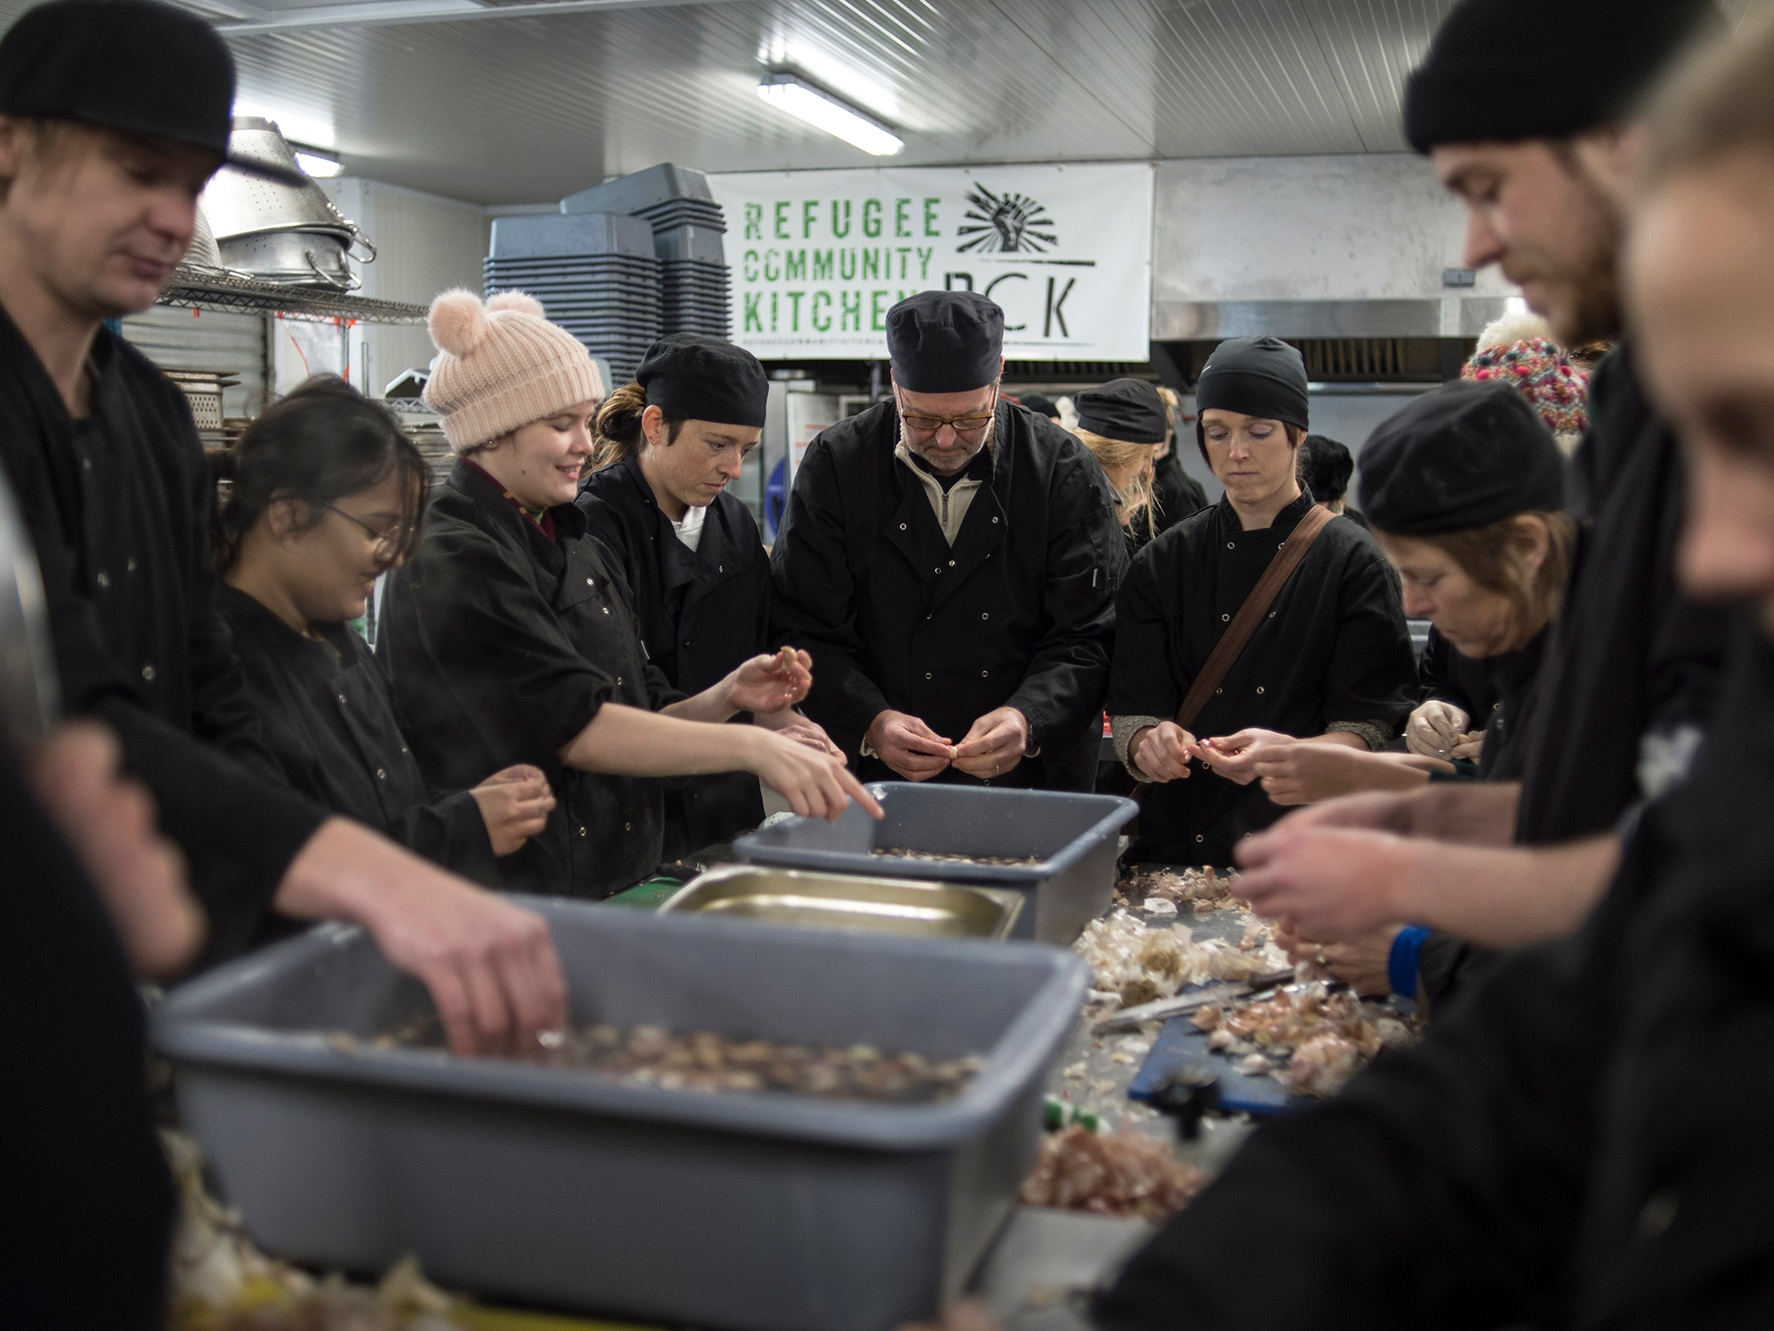 """refugee community kitchen (RCK) - refugeecommunitykitchen.com/volunteer""""We are in constant need of volunteers. We can use your skills in the Calias kitchen for a few hours, a few days or even longer so please give whatever time you can spare."""""""